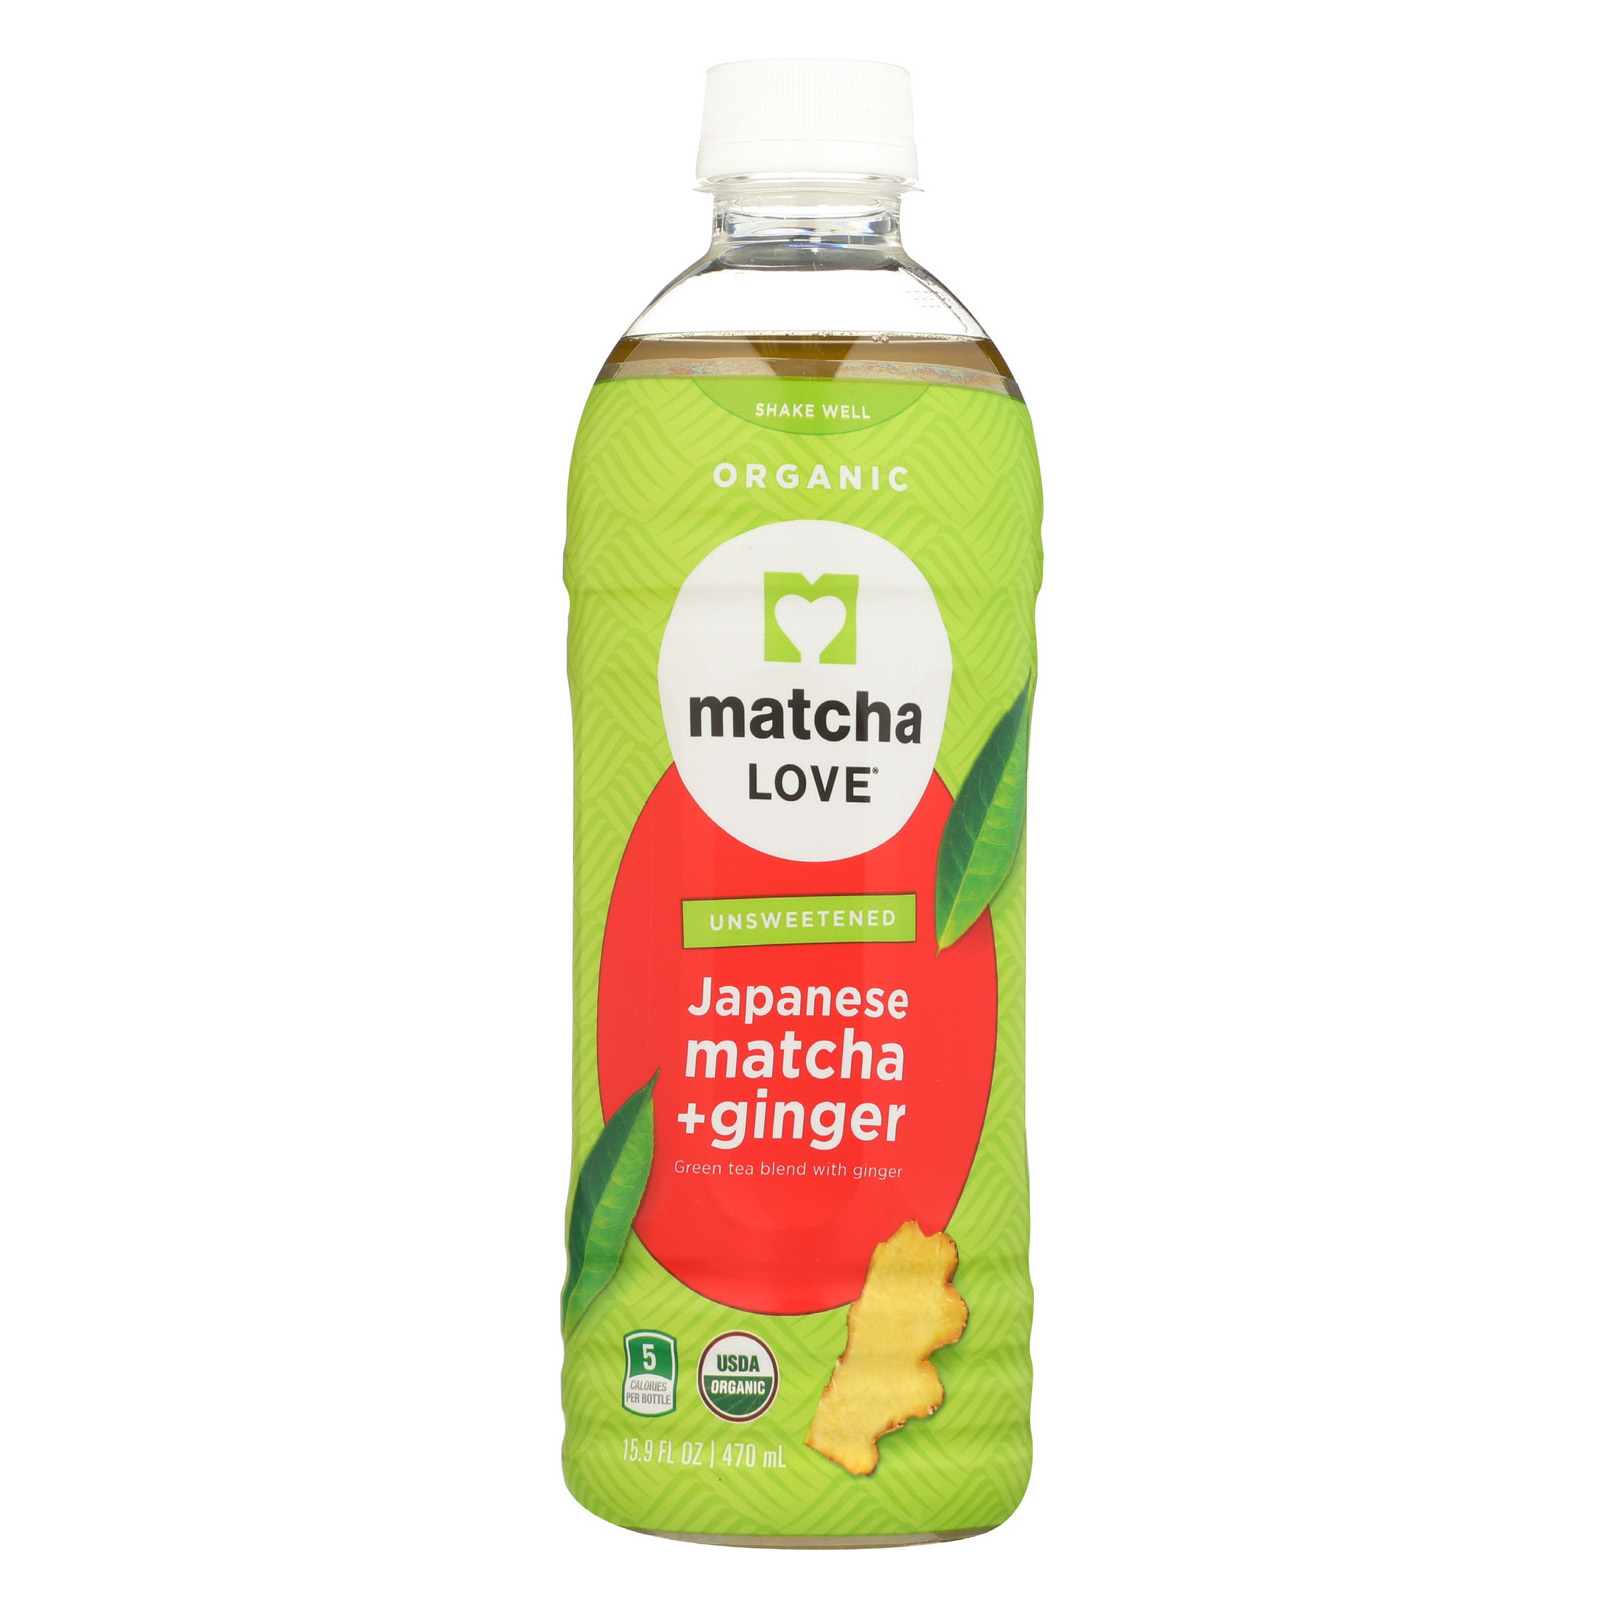 Matcha Love Drink - Organic - Matcha and Ginger - Case of 12 - 15.9 fl oz